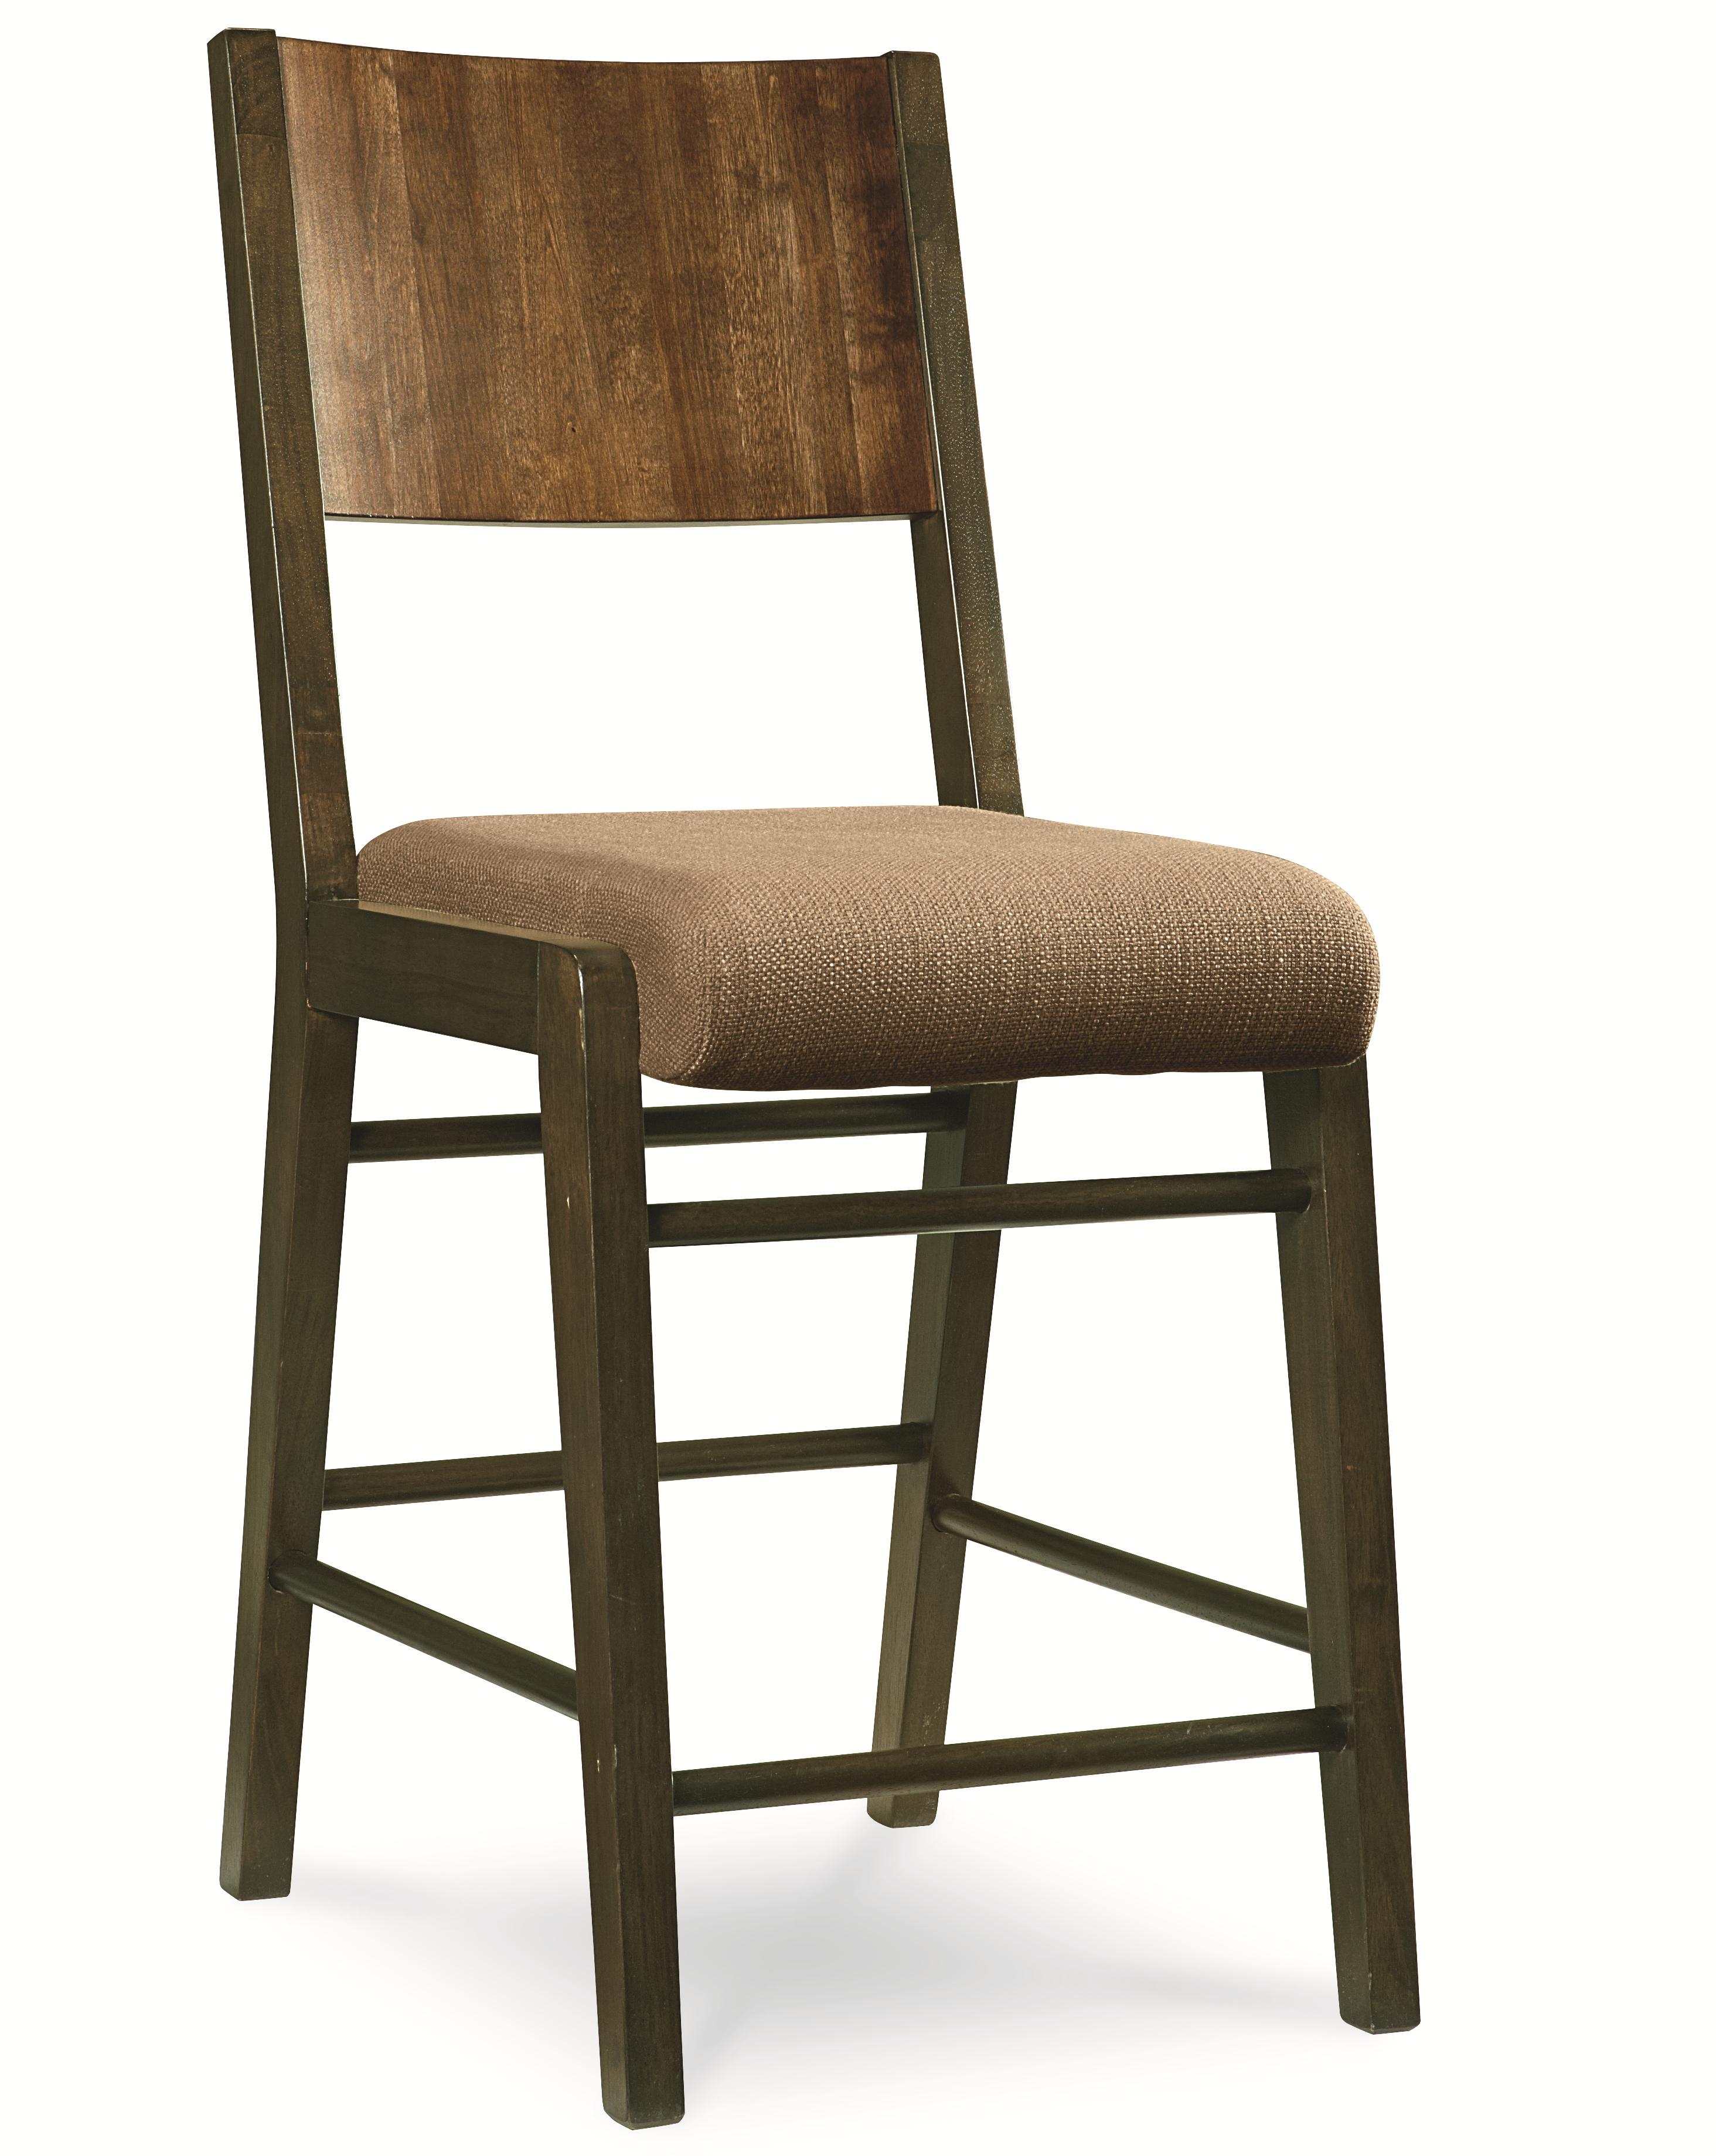 Amazing Pub Chair With Upholstered Seat